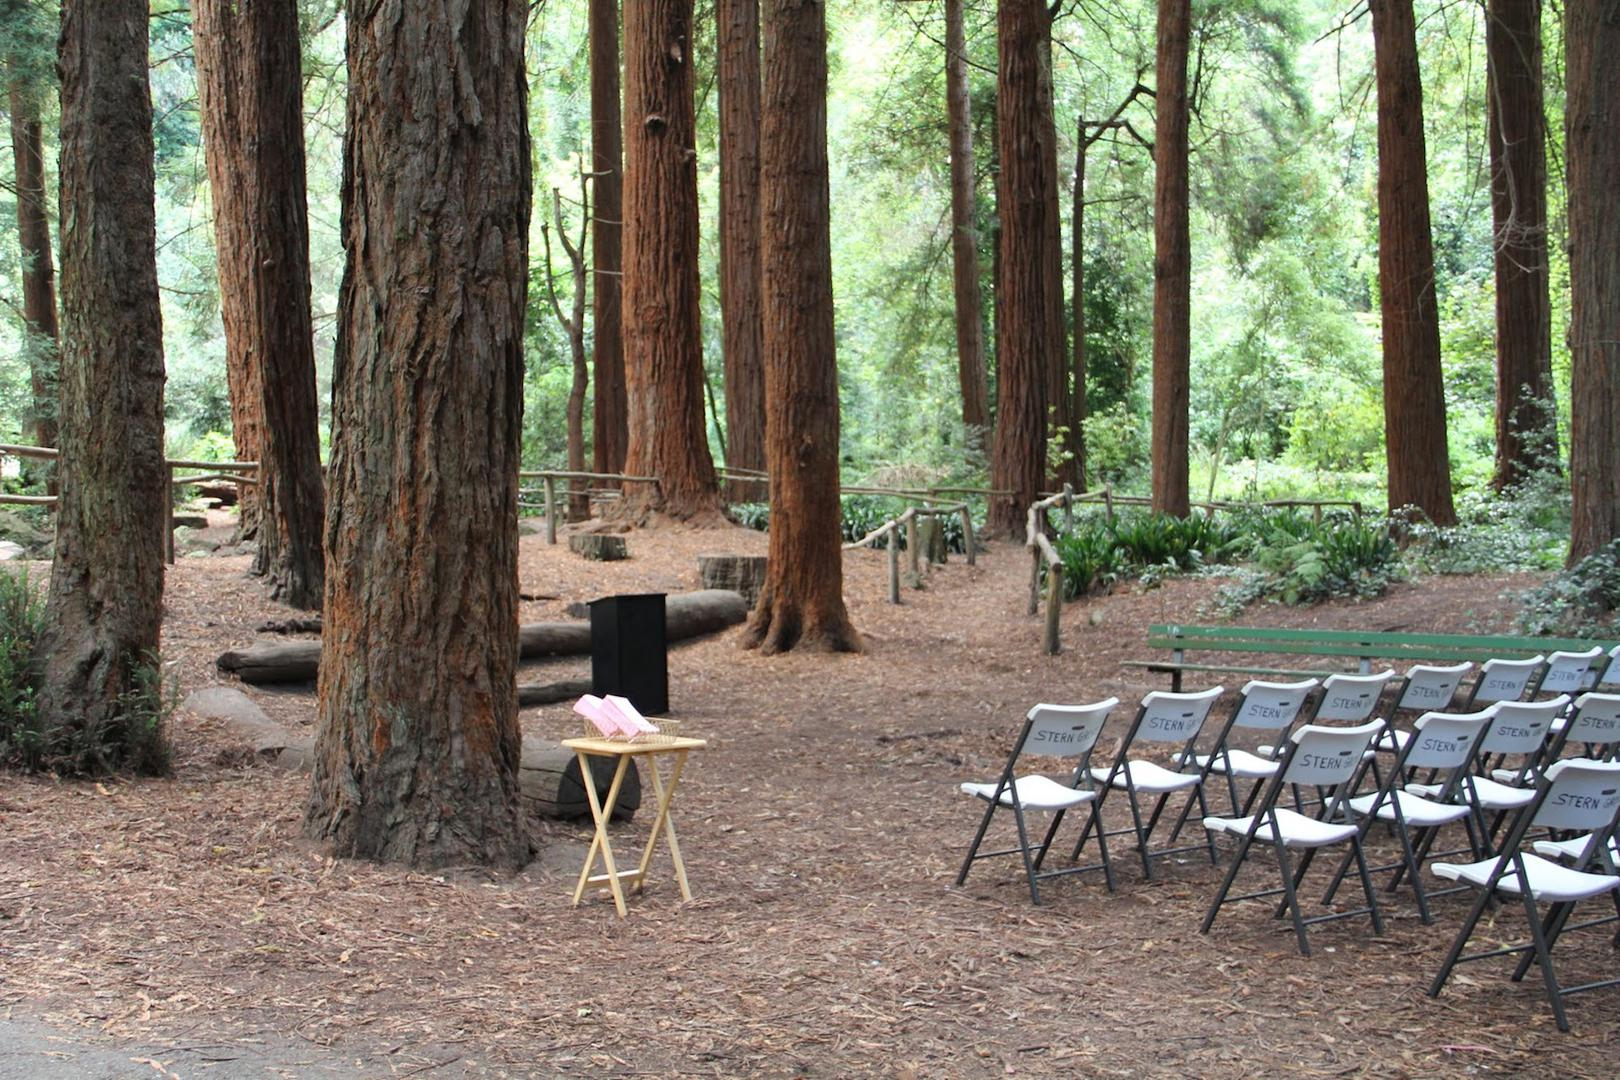 space at Sigmund Stern Grove Park